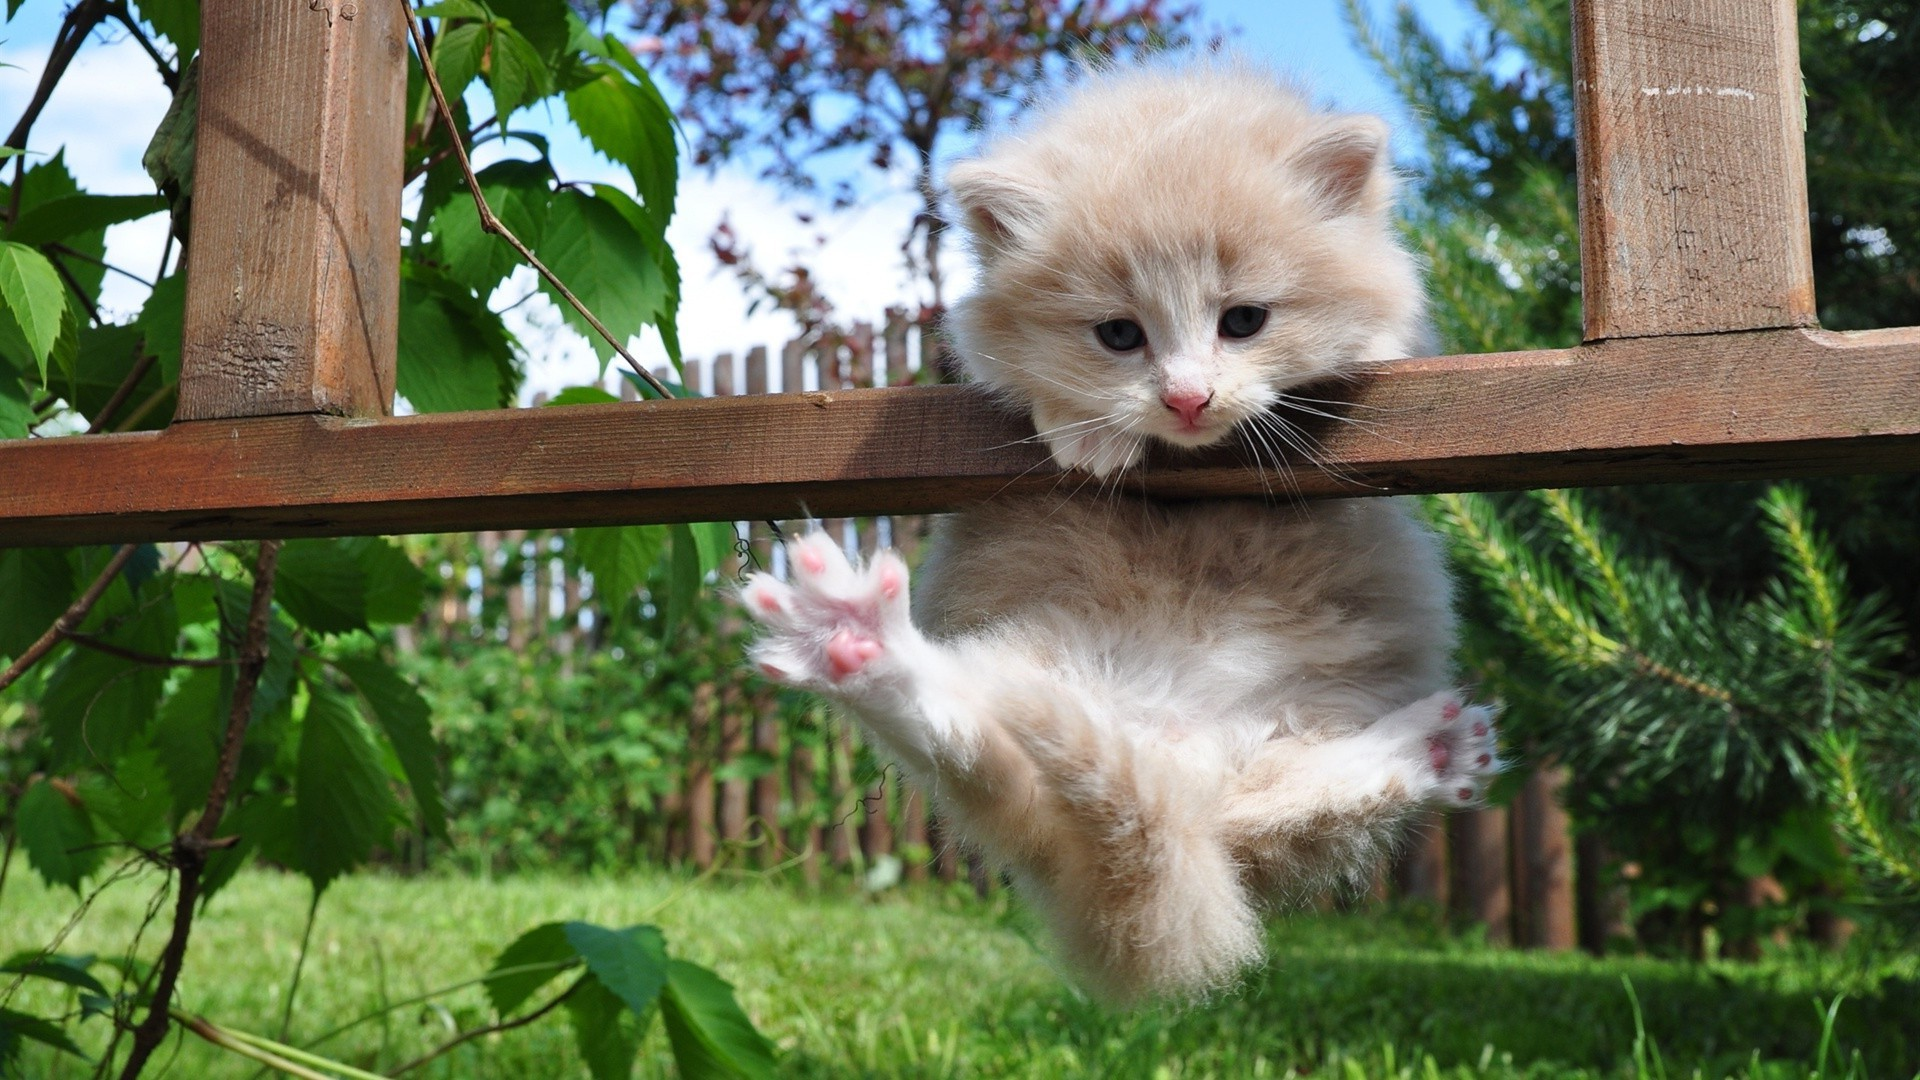 Kitten trying not to fall)))